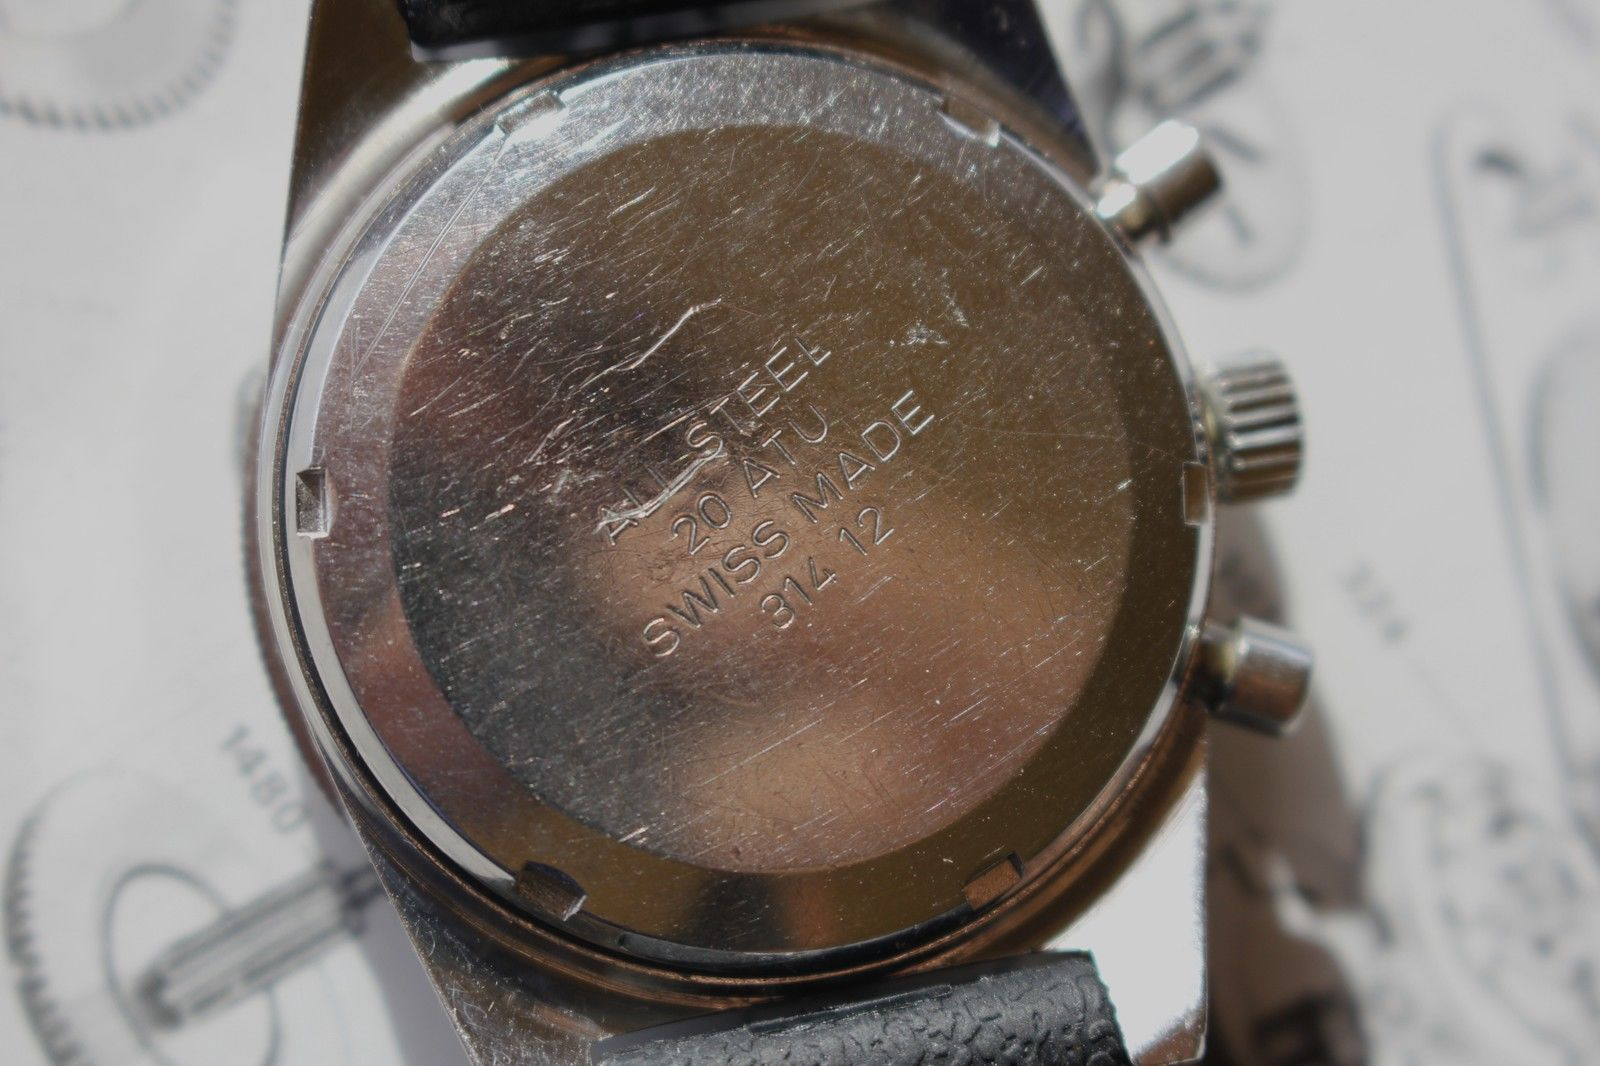 Such a clean and attractive watch, and in really great shape. Photo from eBay listing, click through to bid.